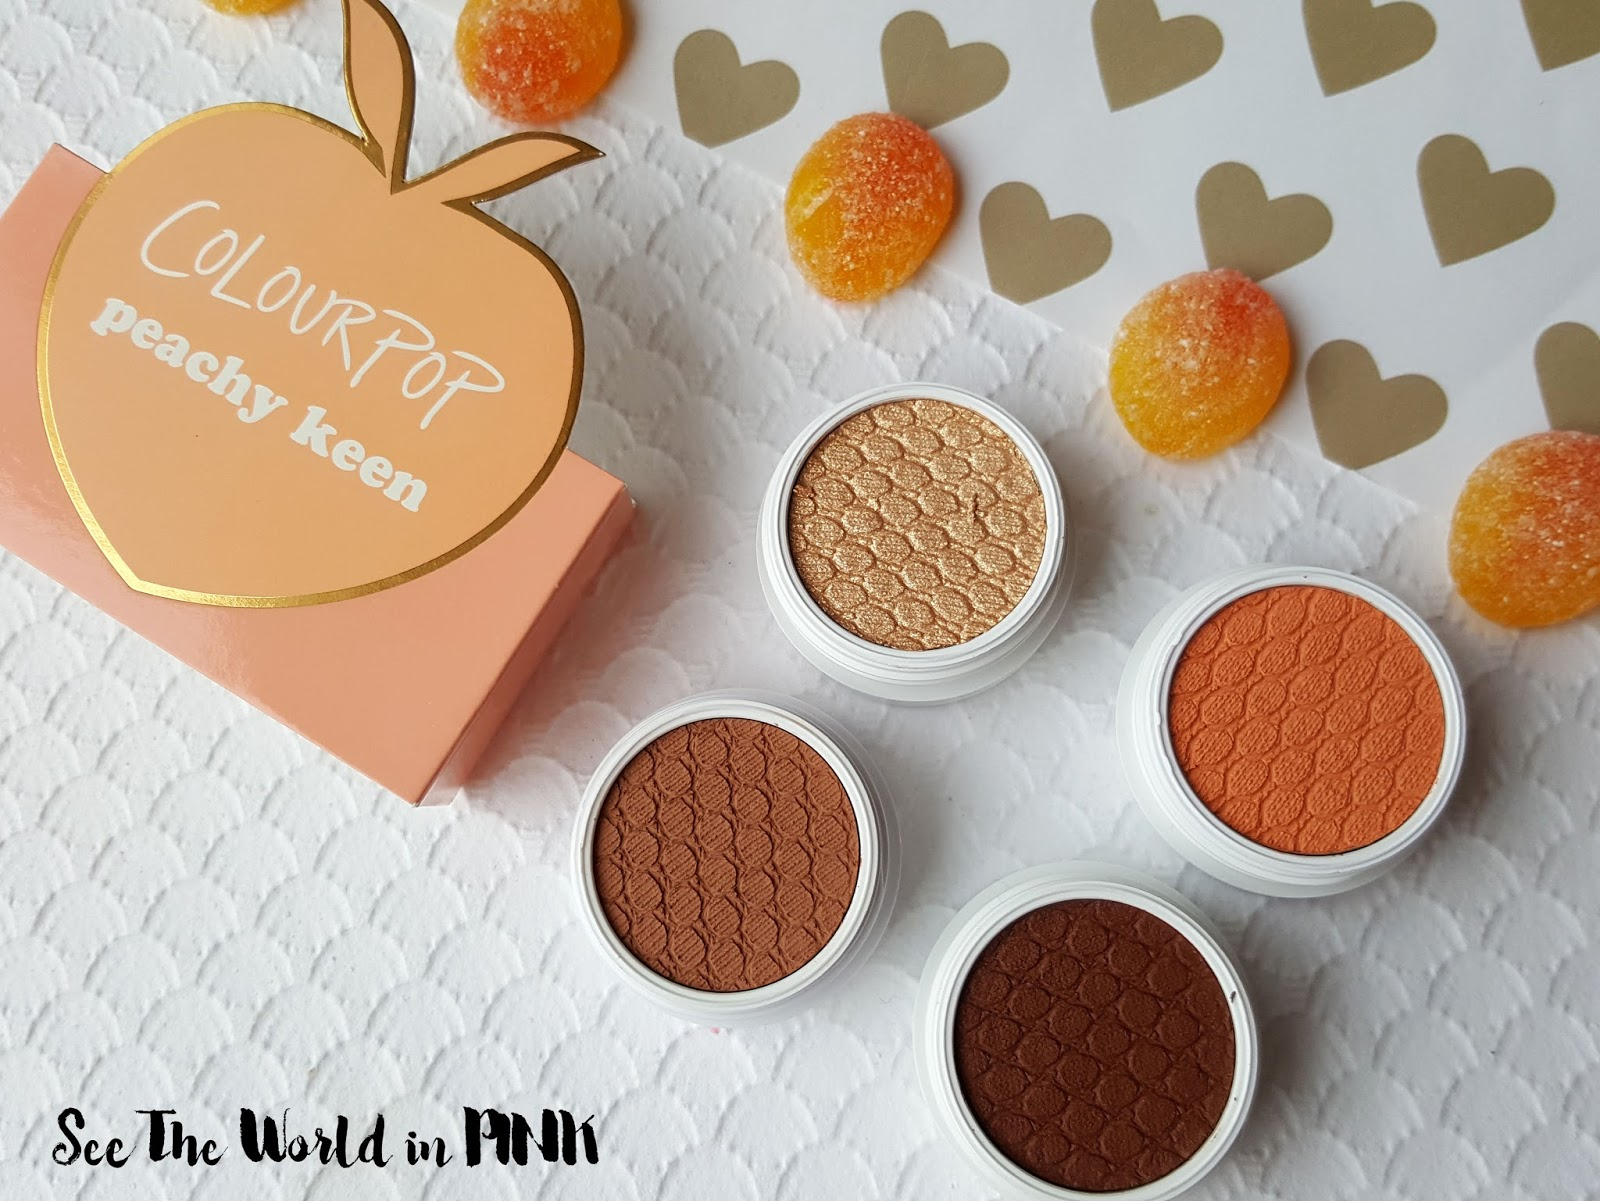 ColourPop Peachy Keen Super Shock Shadow Foursome - Reviews, Swatches, and Makeup Look!